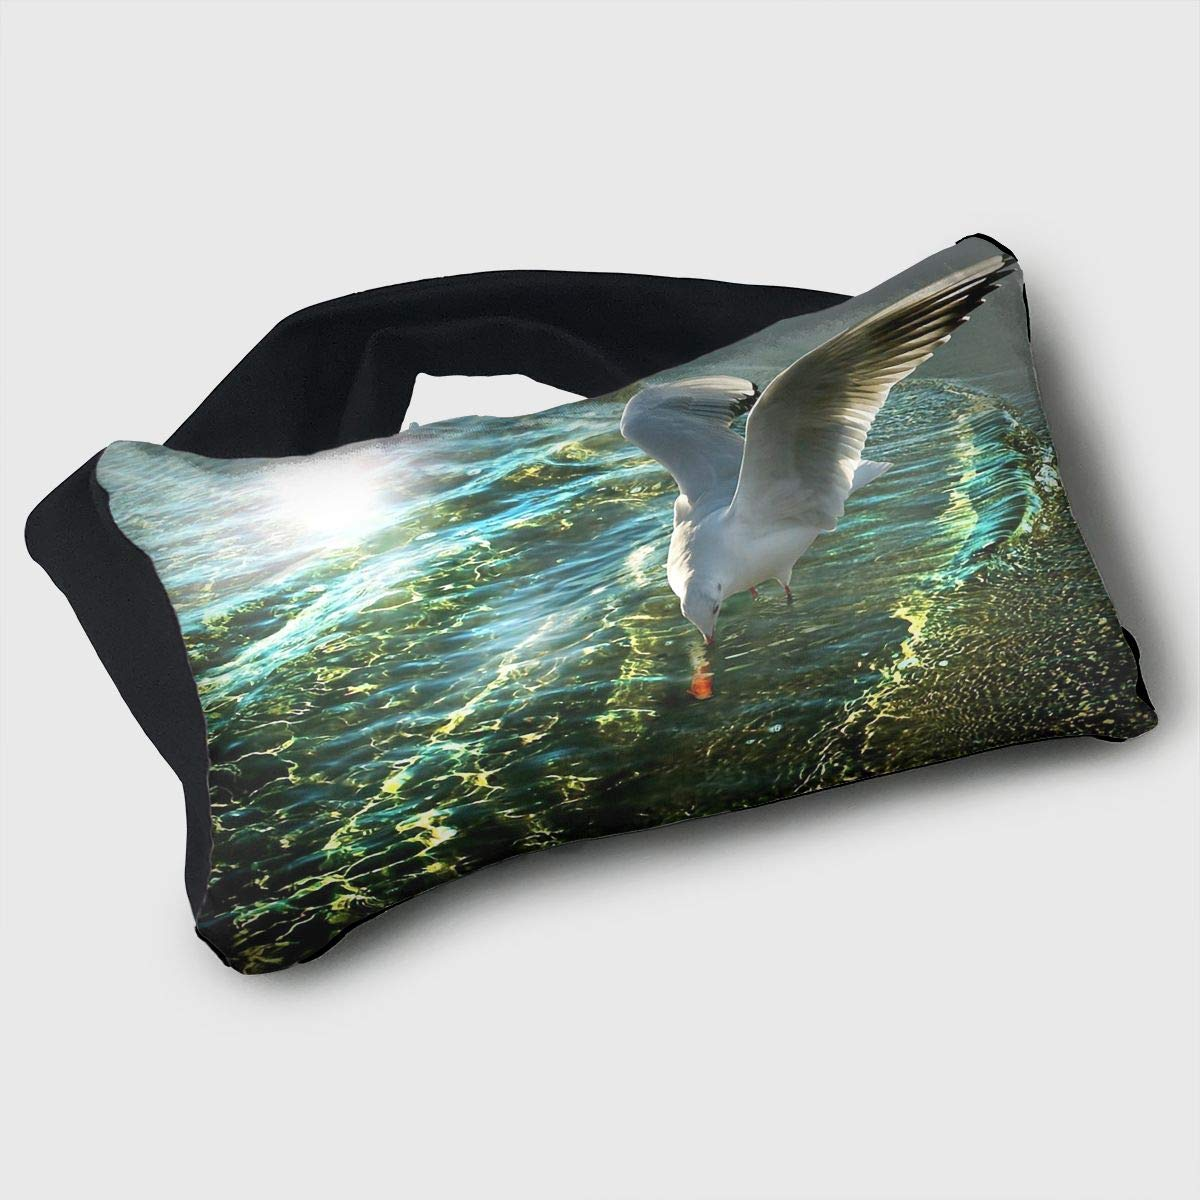 Amazon.com: Eye Mask Eye Pillow Seagull Print Eyeshade ...